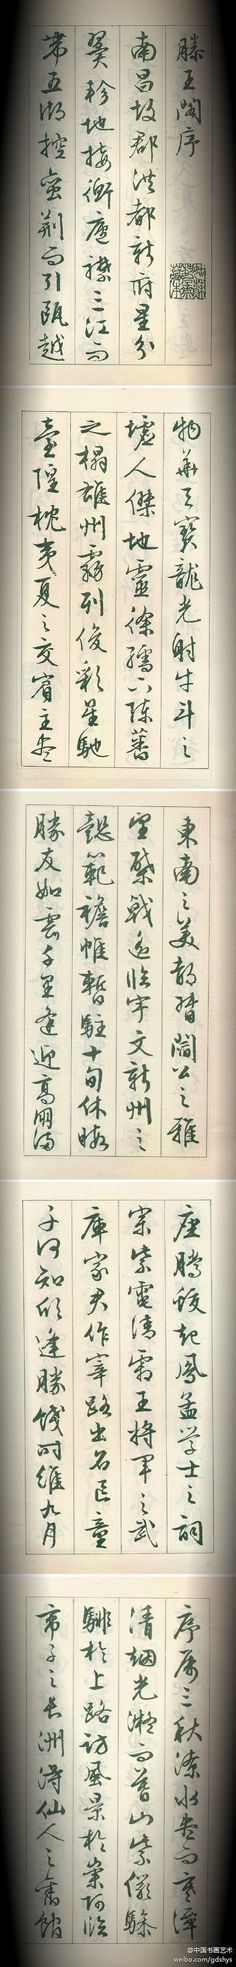 Ming dynasty Wen zengming ,Chinese typography